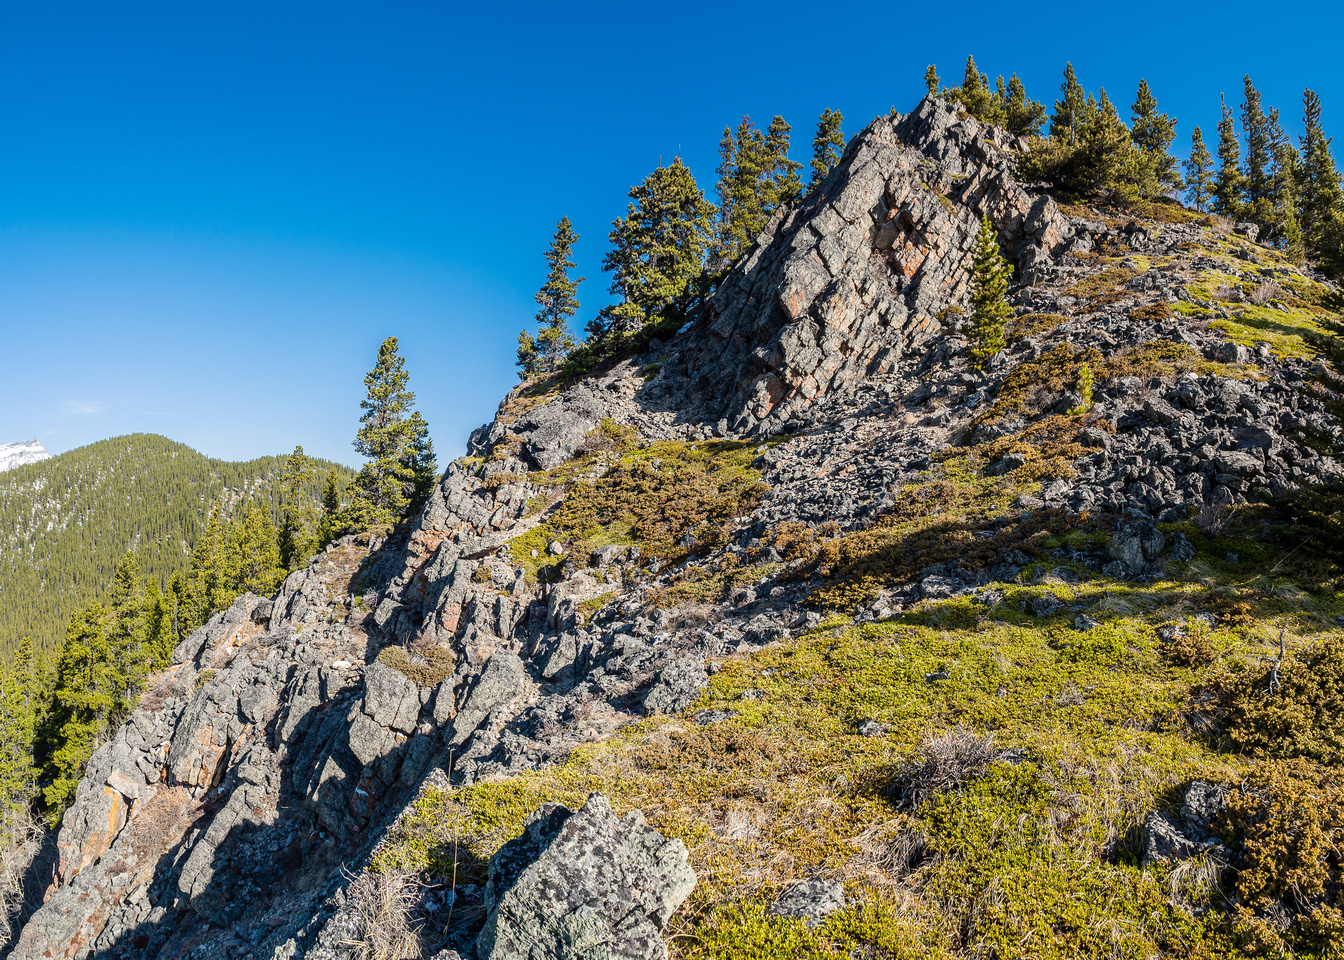 A lovely little bench where I spotted the dark colored Marmot before he ducked into the rocks.